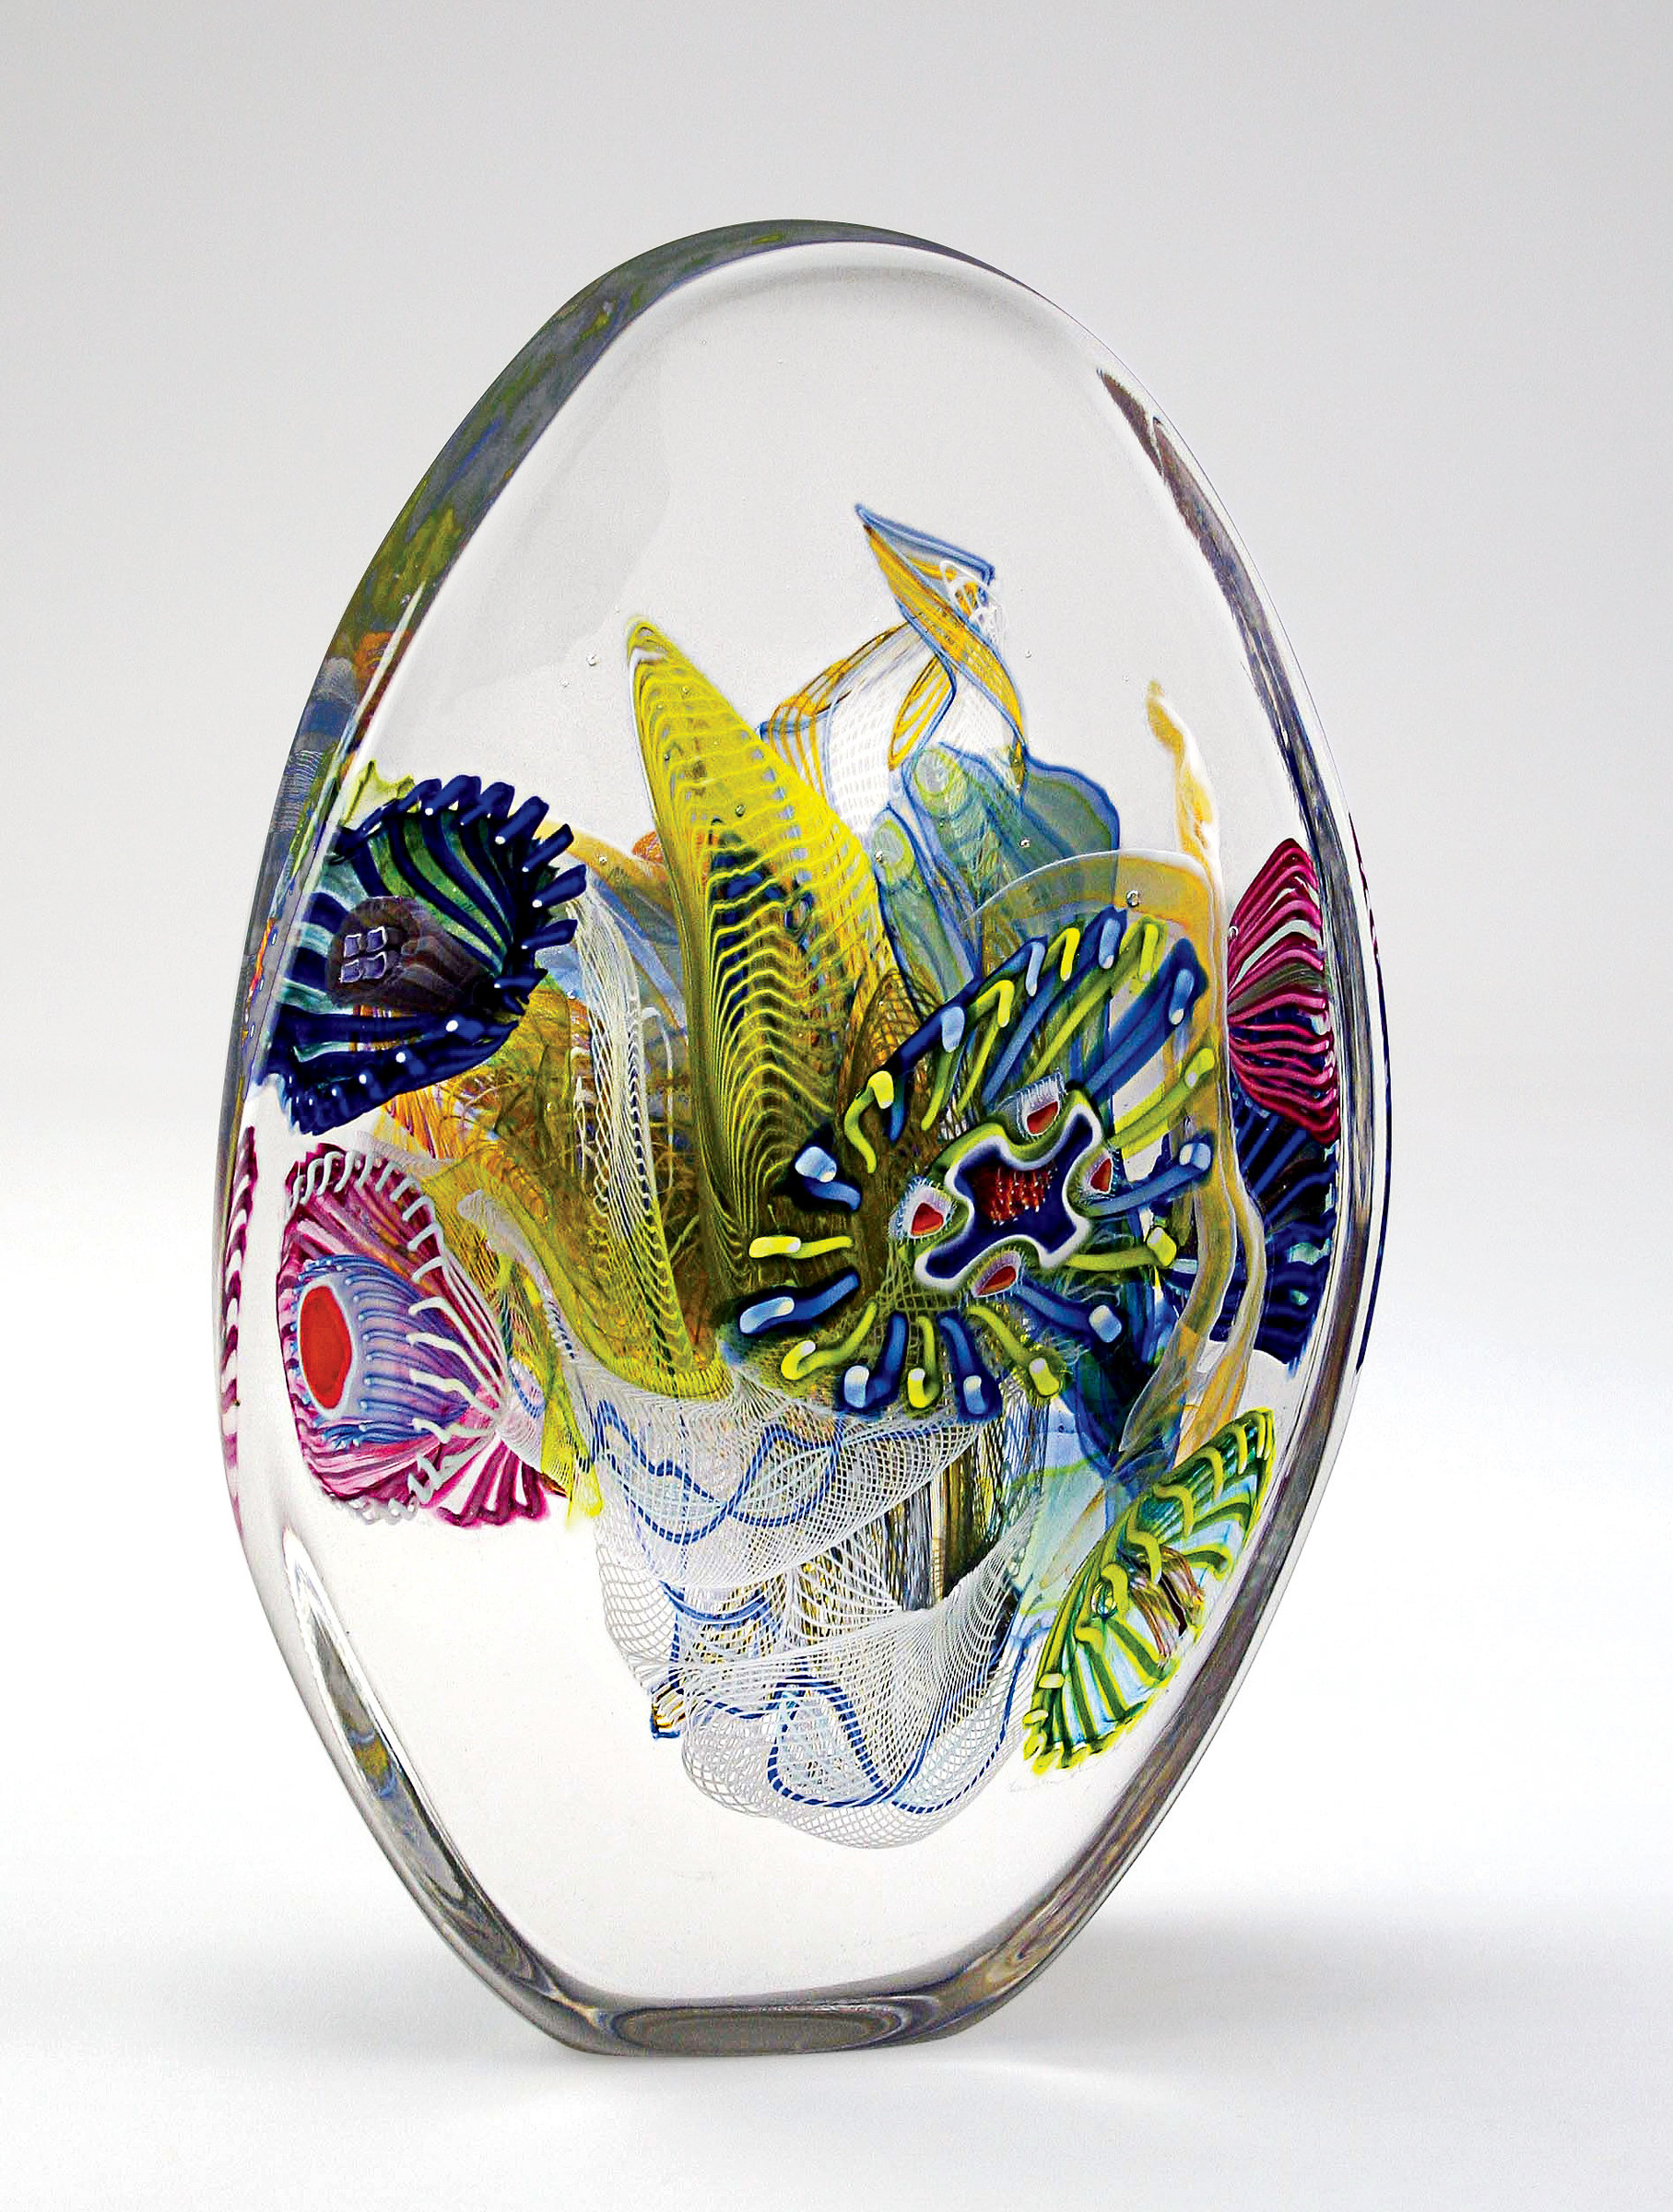 Crystal Optical III By Wes Hunting Art Glass Sculpture Artful Home